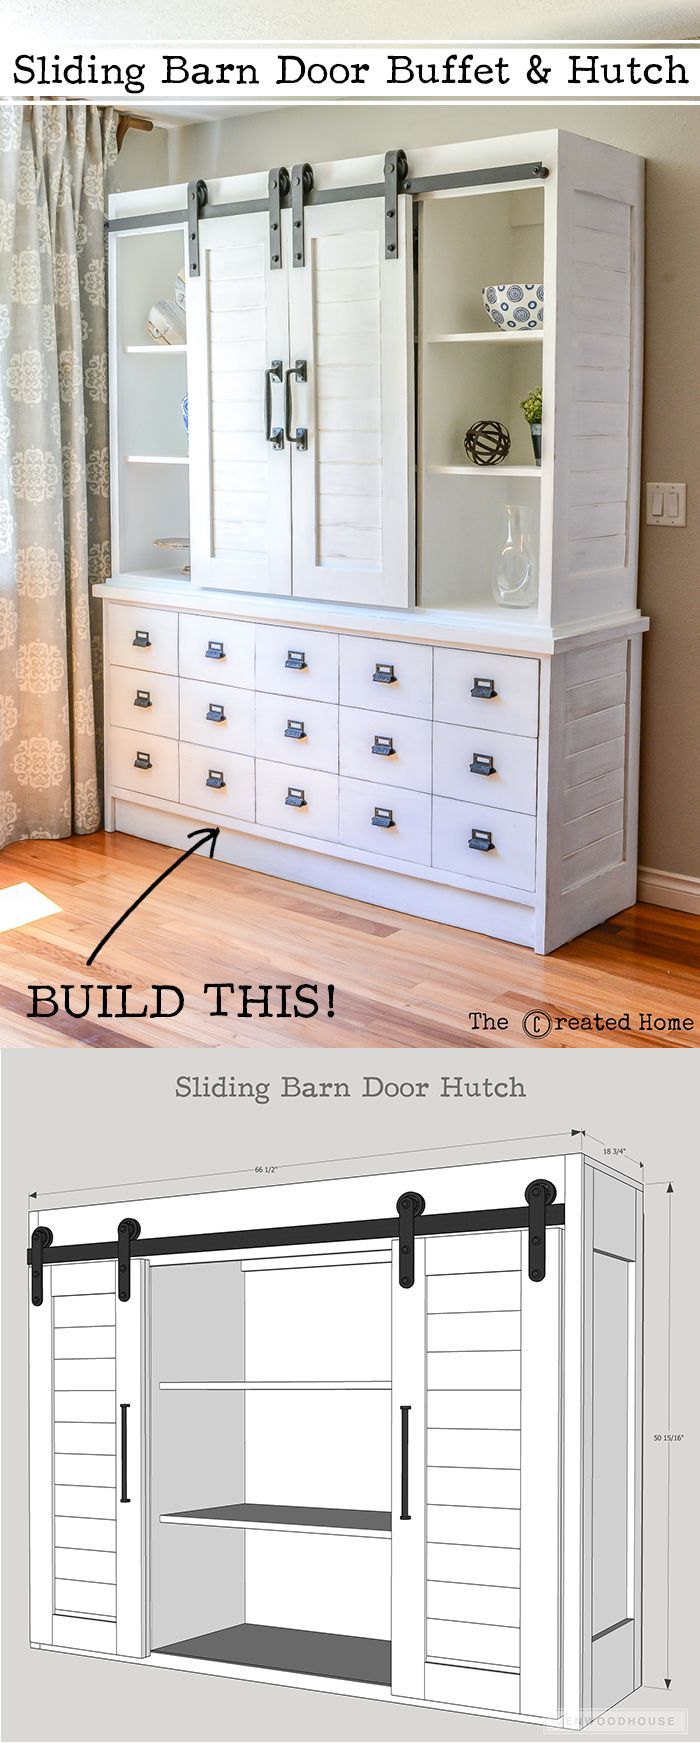 How to build a DIY farmhouse sliding barn door hutch and buffet